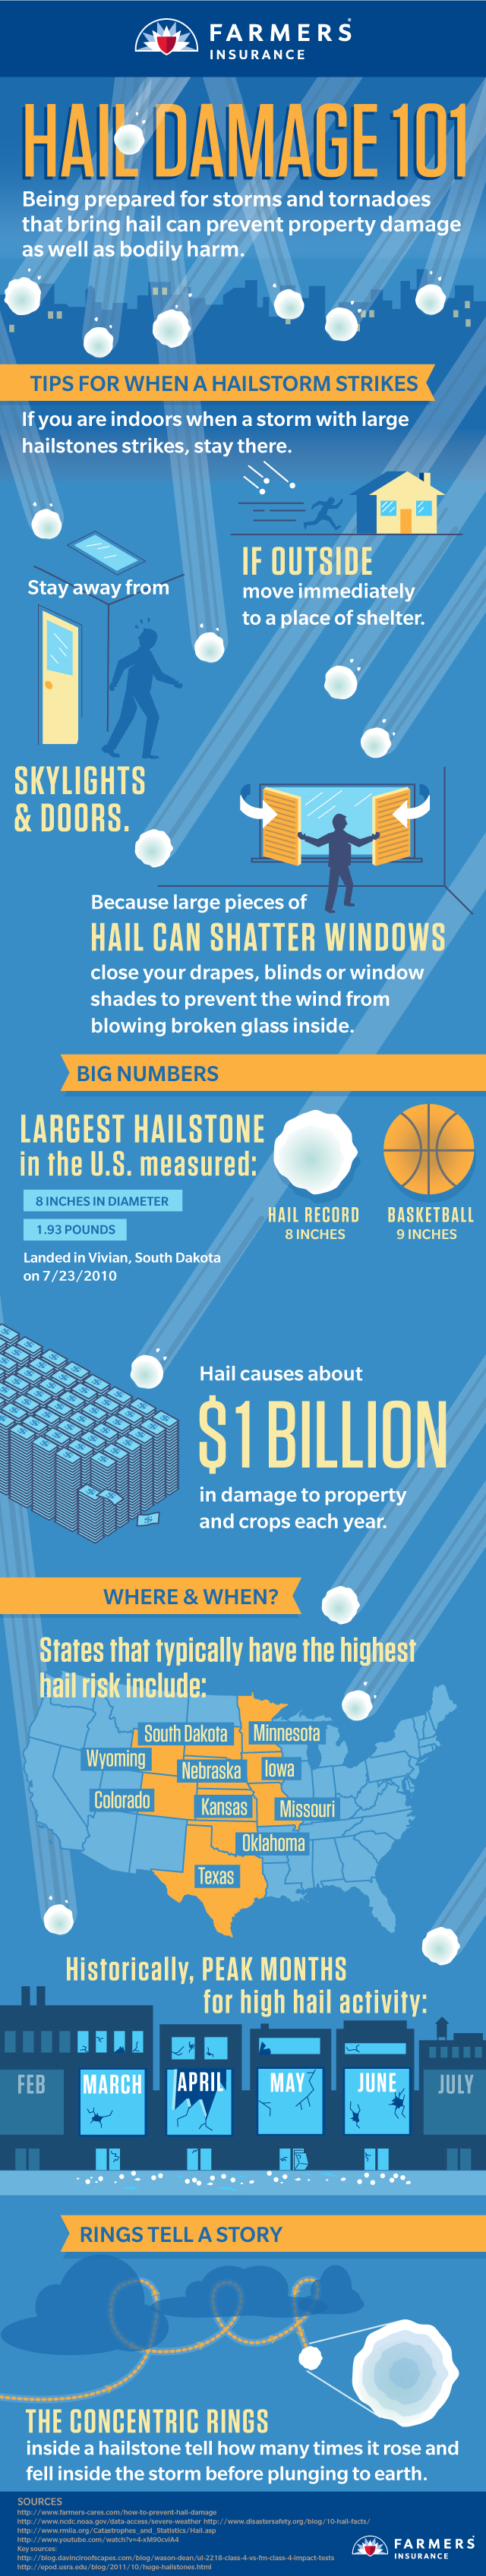 hail safety can pea sized hail damage your roof probably not but larger hailstones may dent shingles and in severe cases leave holes and cracks  [ 640 x 3393 Pixel ]